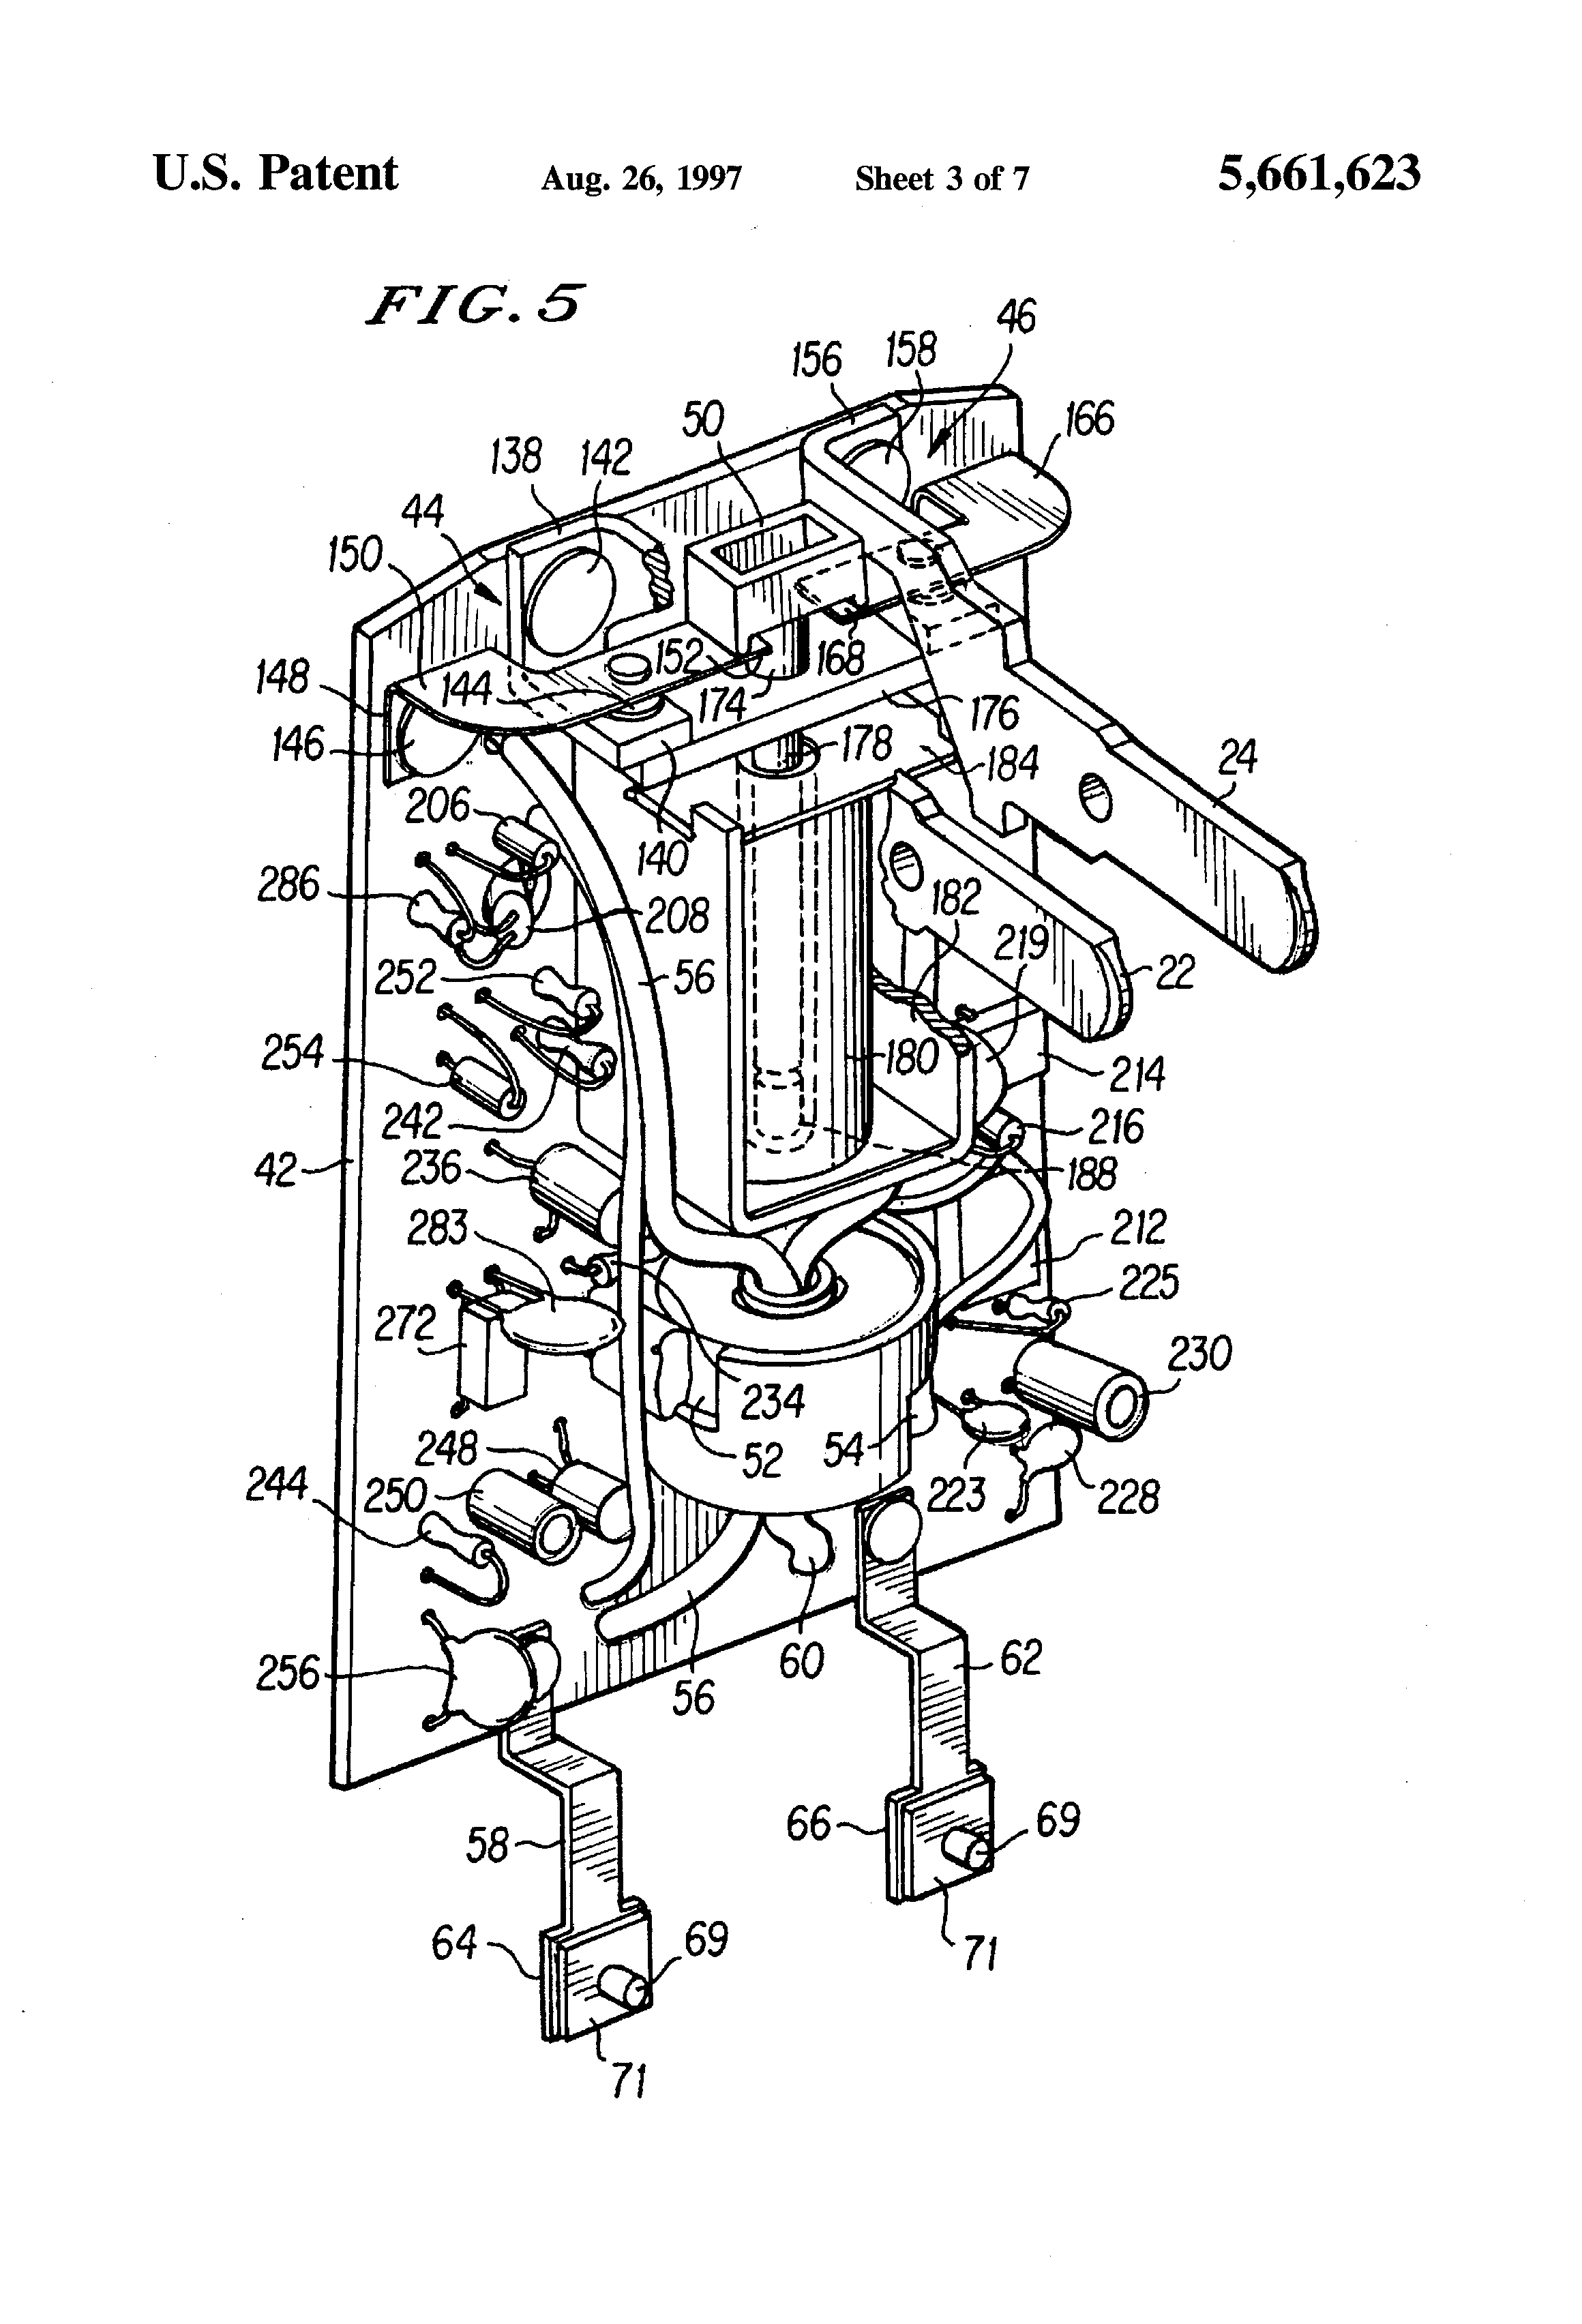 patent us5661623 - ground fault circuit interrupter plug